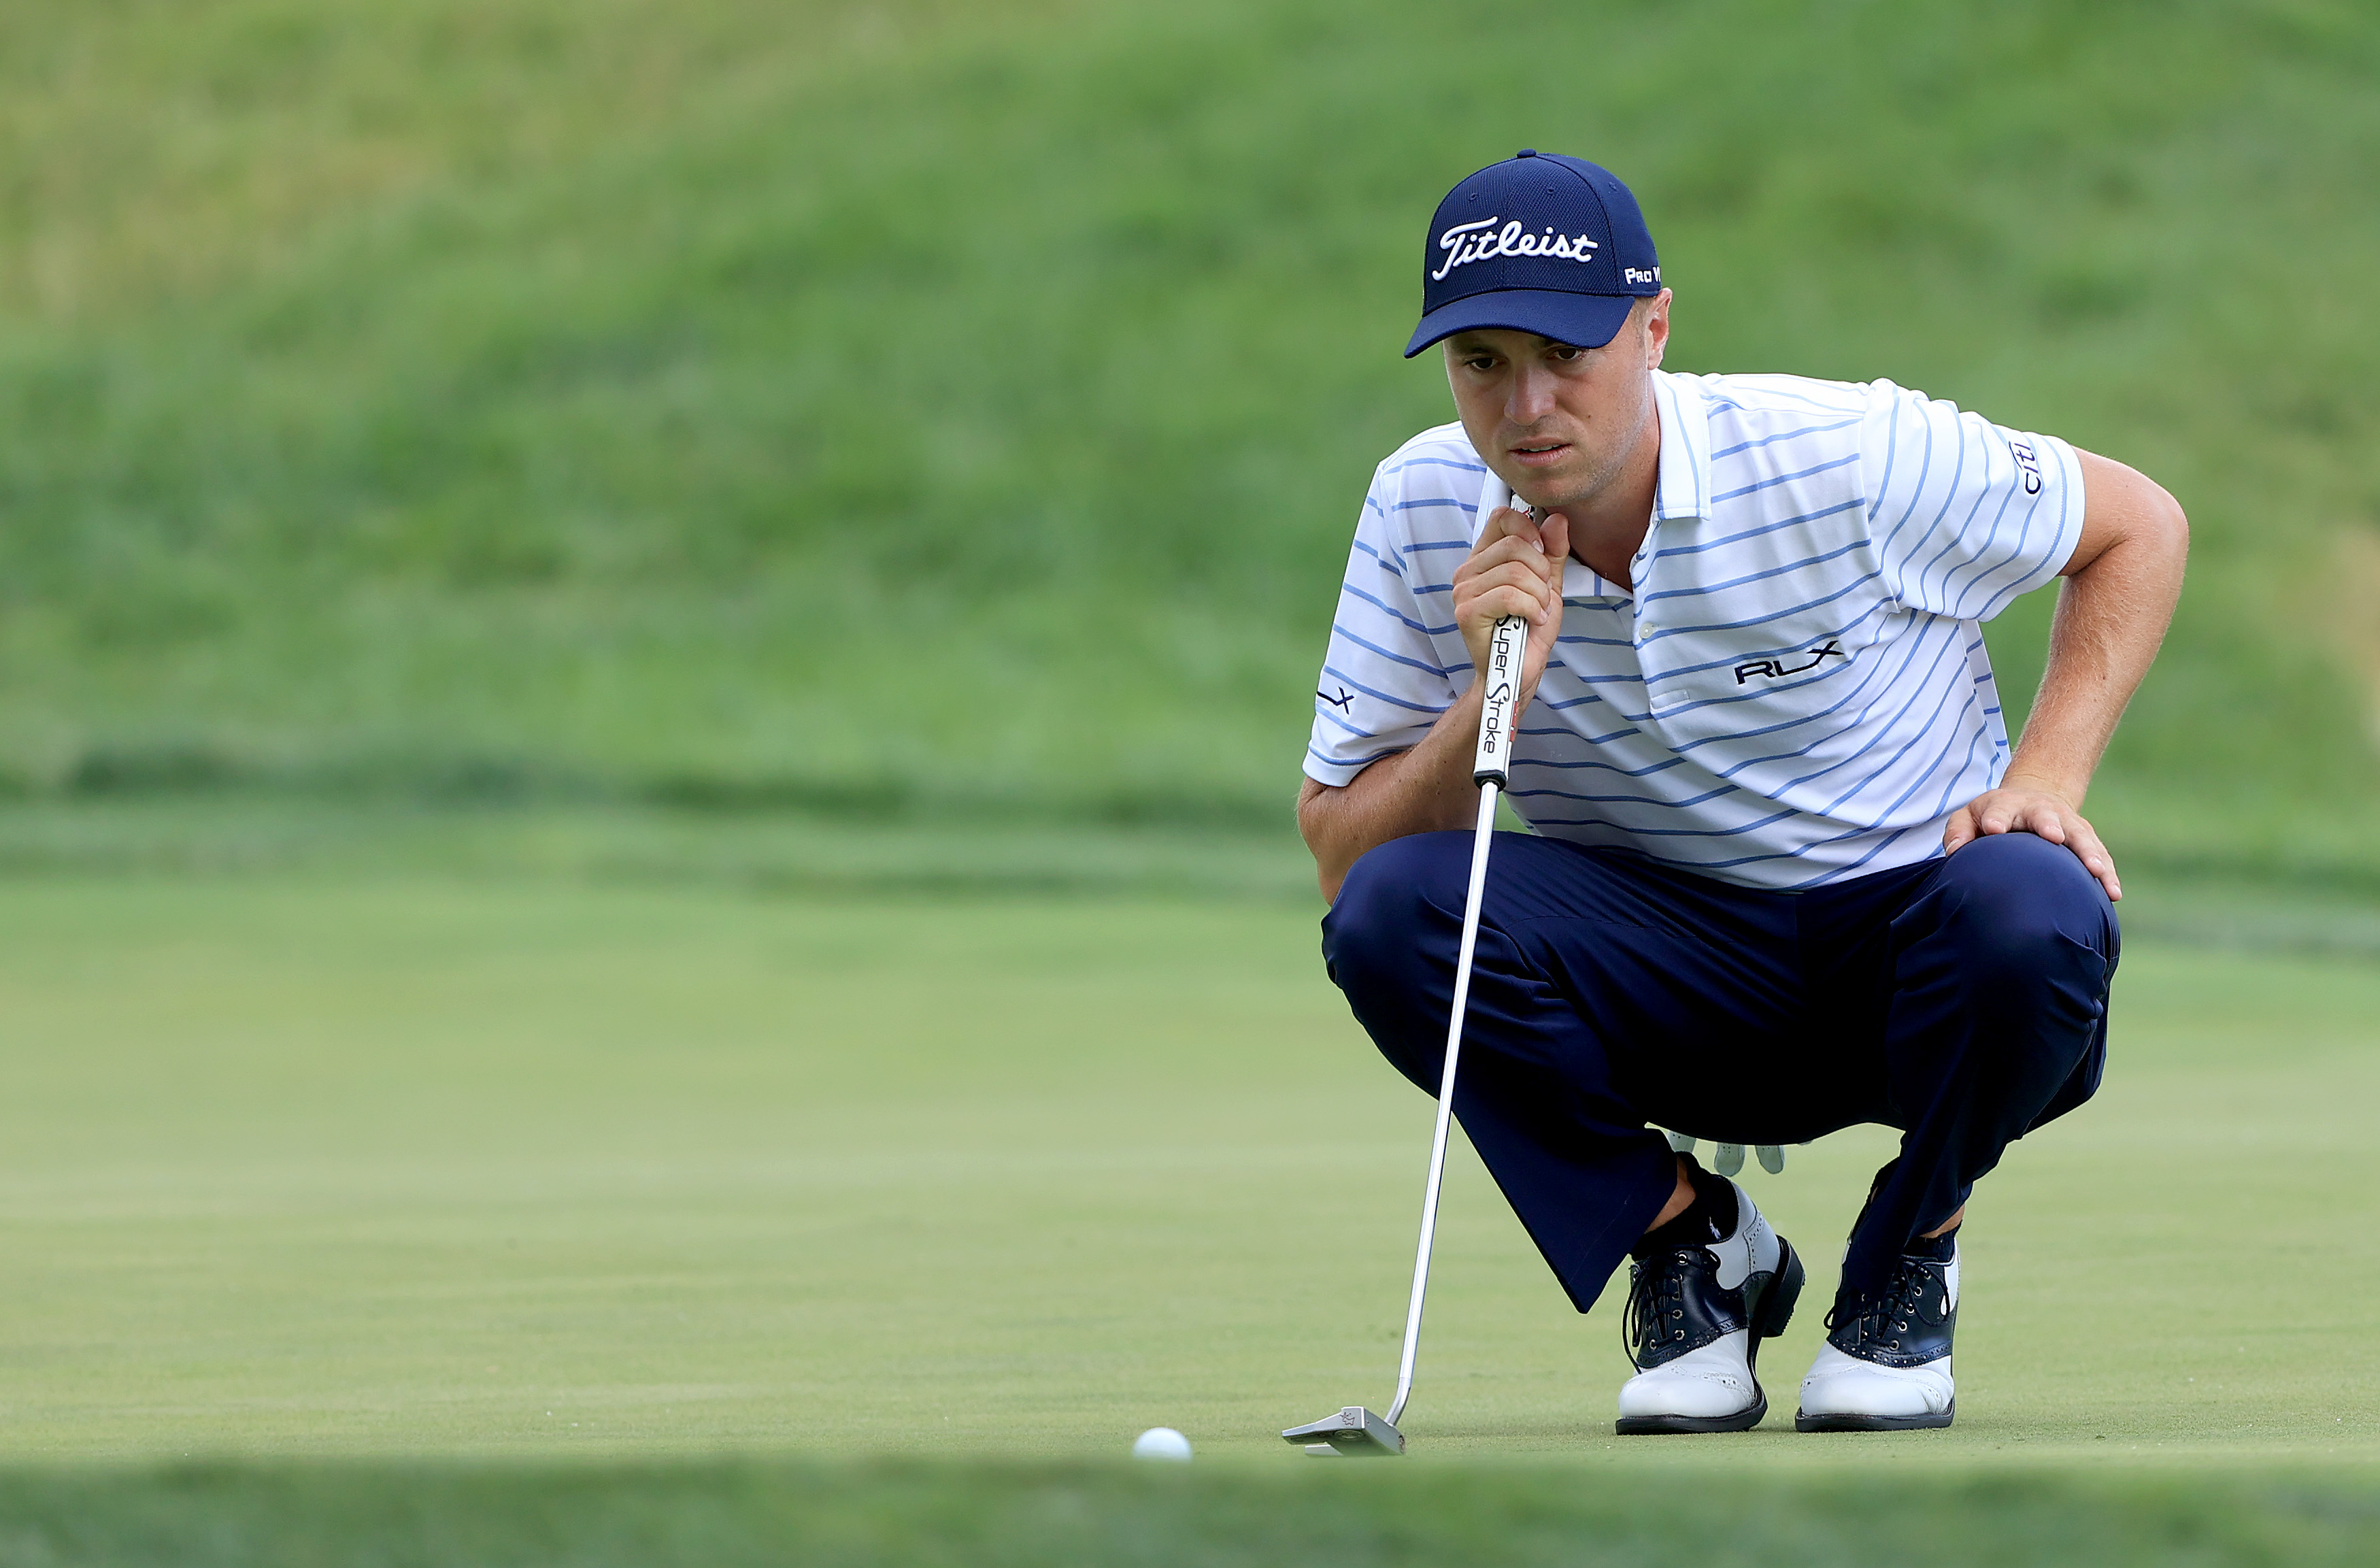 Justin Thomas Opens Up Two Shot Lead At Muirfield The Boston Globe